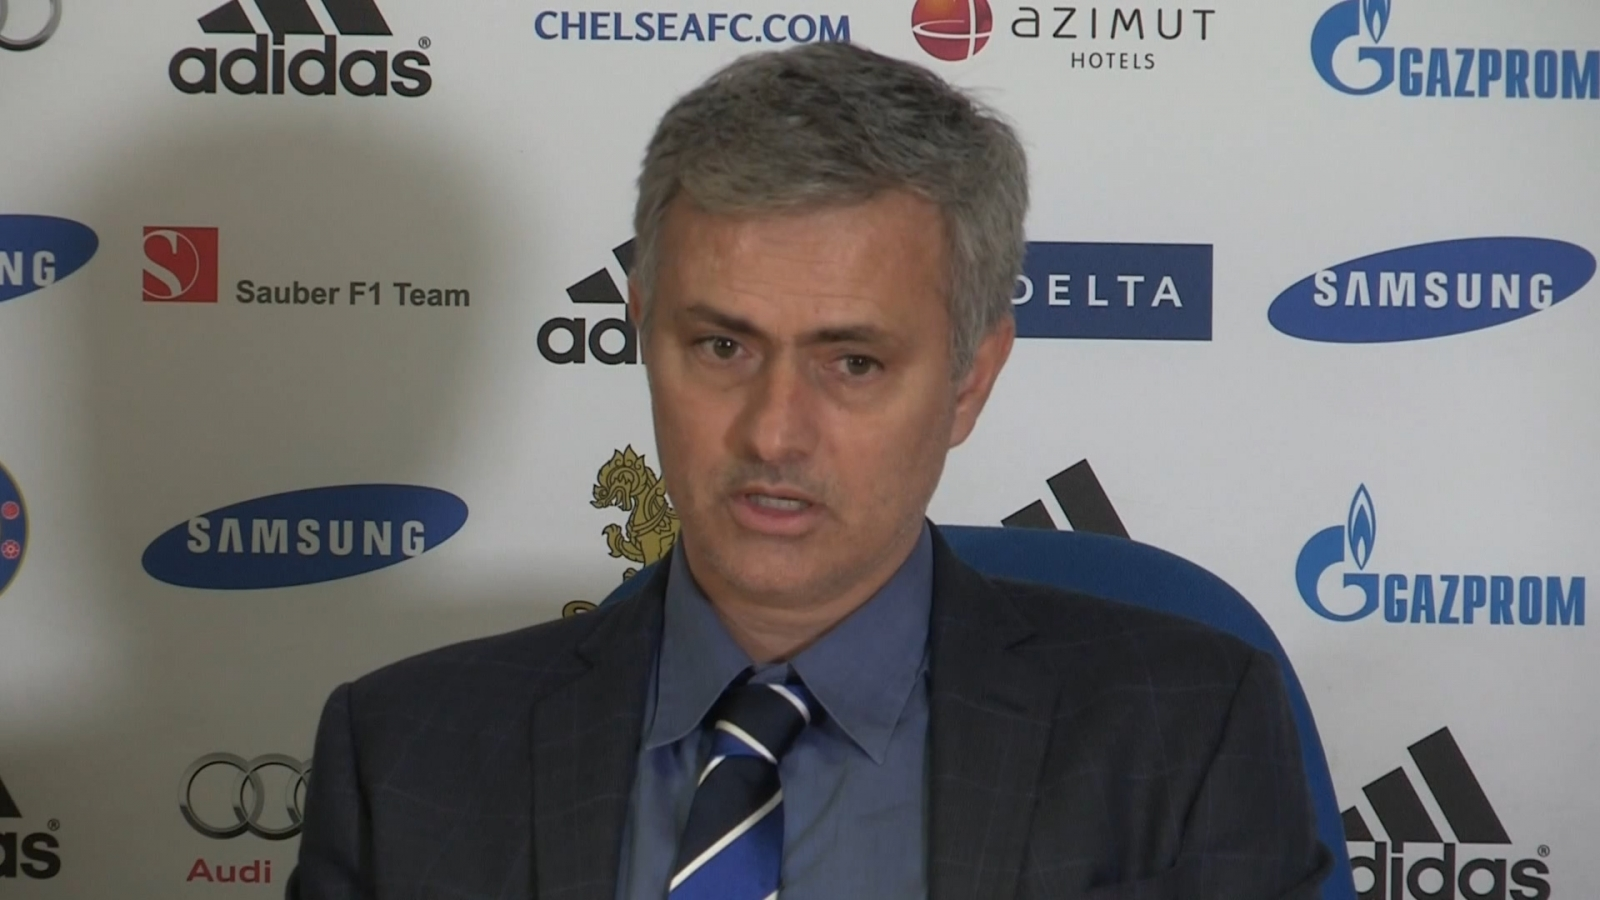 Chelsea boss threatened to walk out of press conference following Branislav Ivanovic controversy